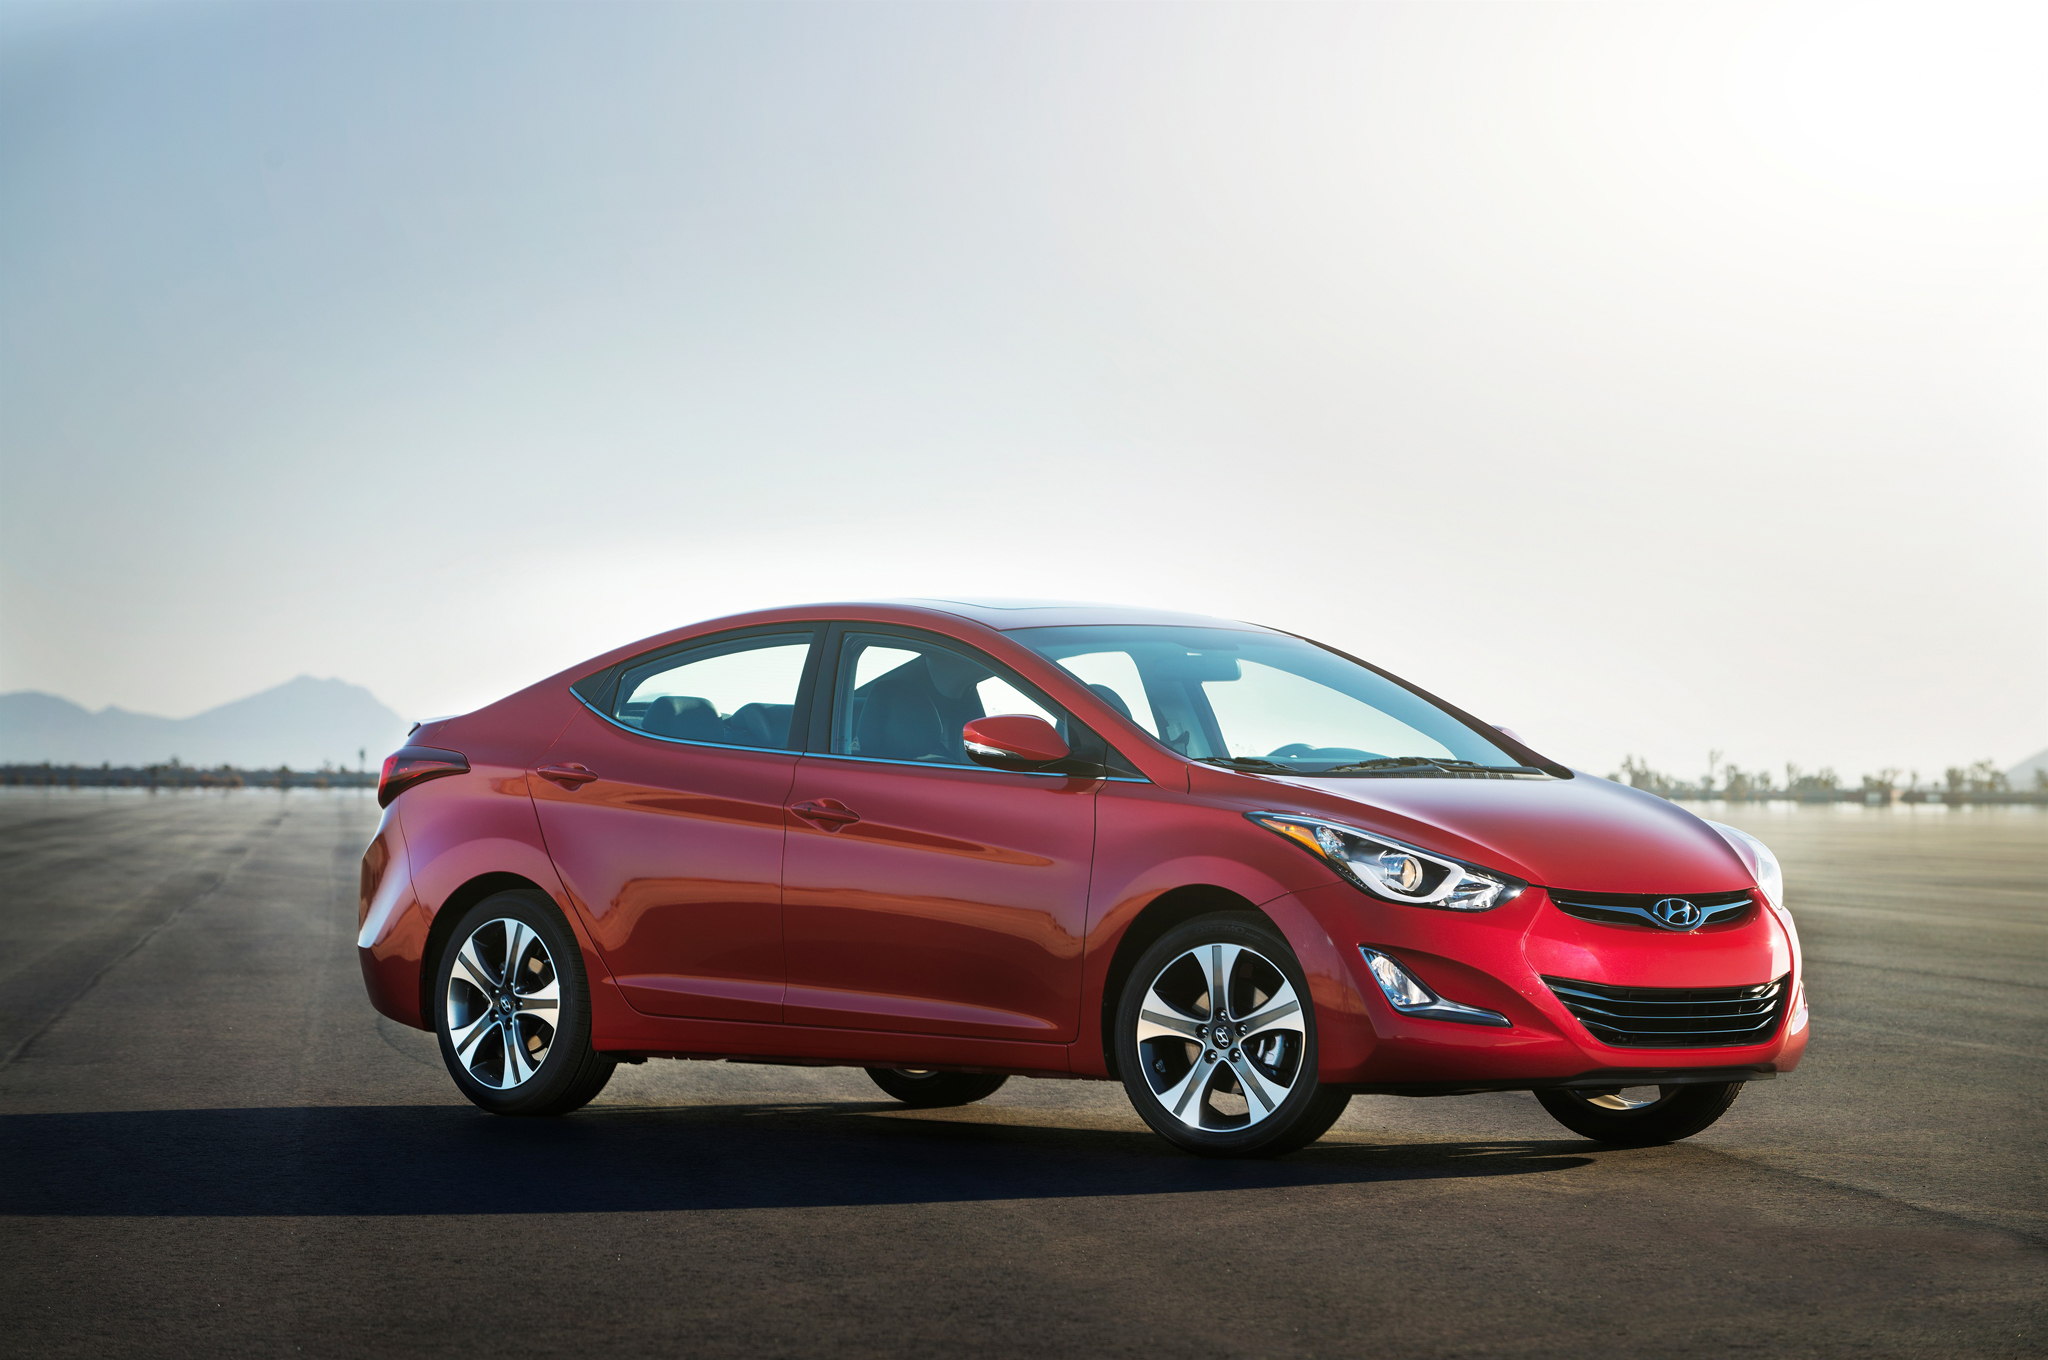 pedal elantra elantras sport pad hyundai for stopper brake news pads recalls deteriorating over